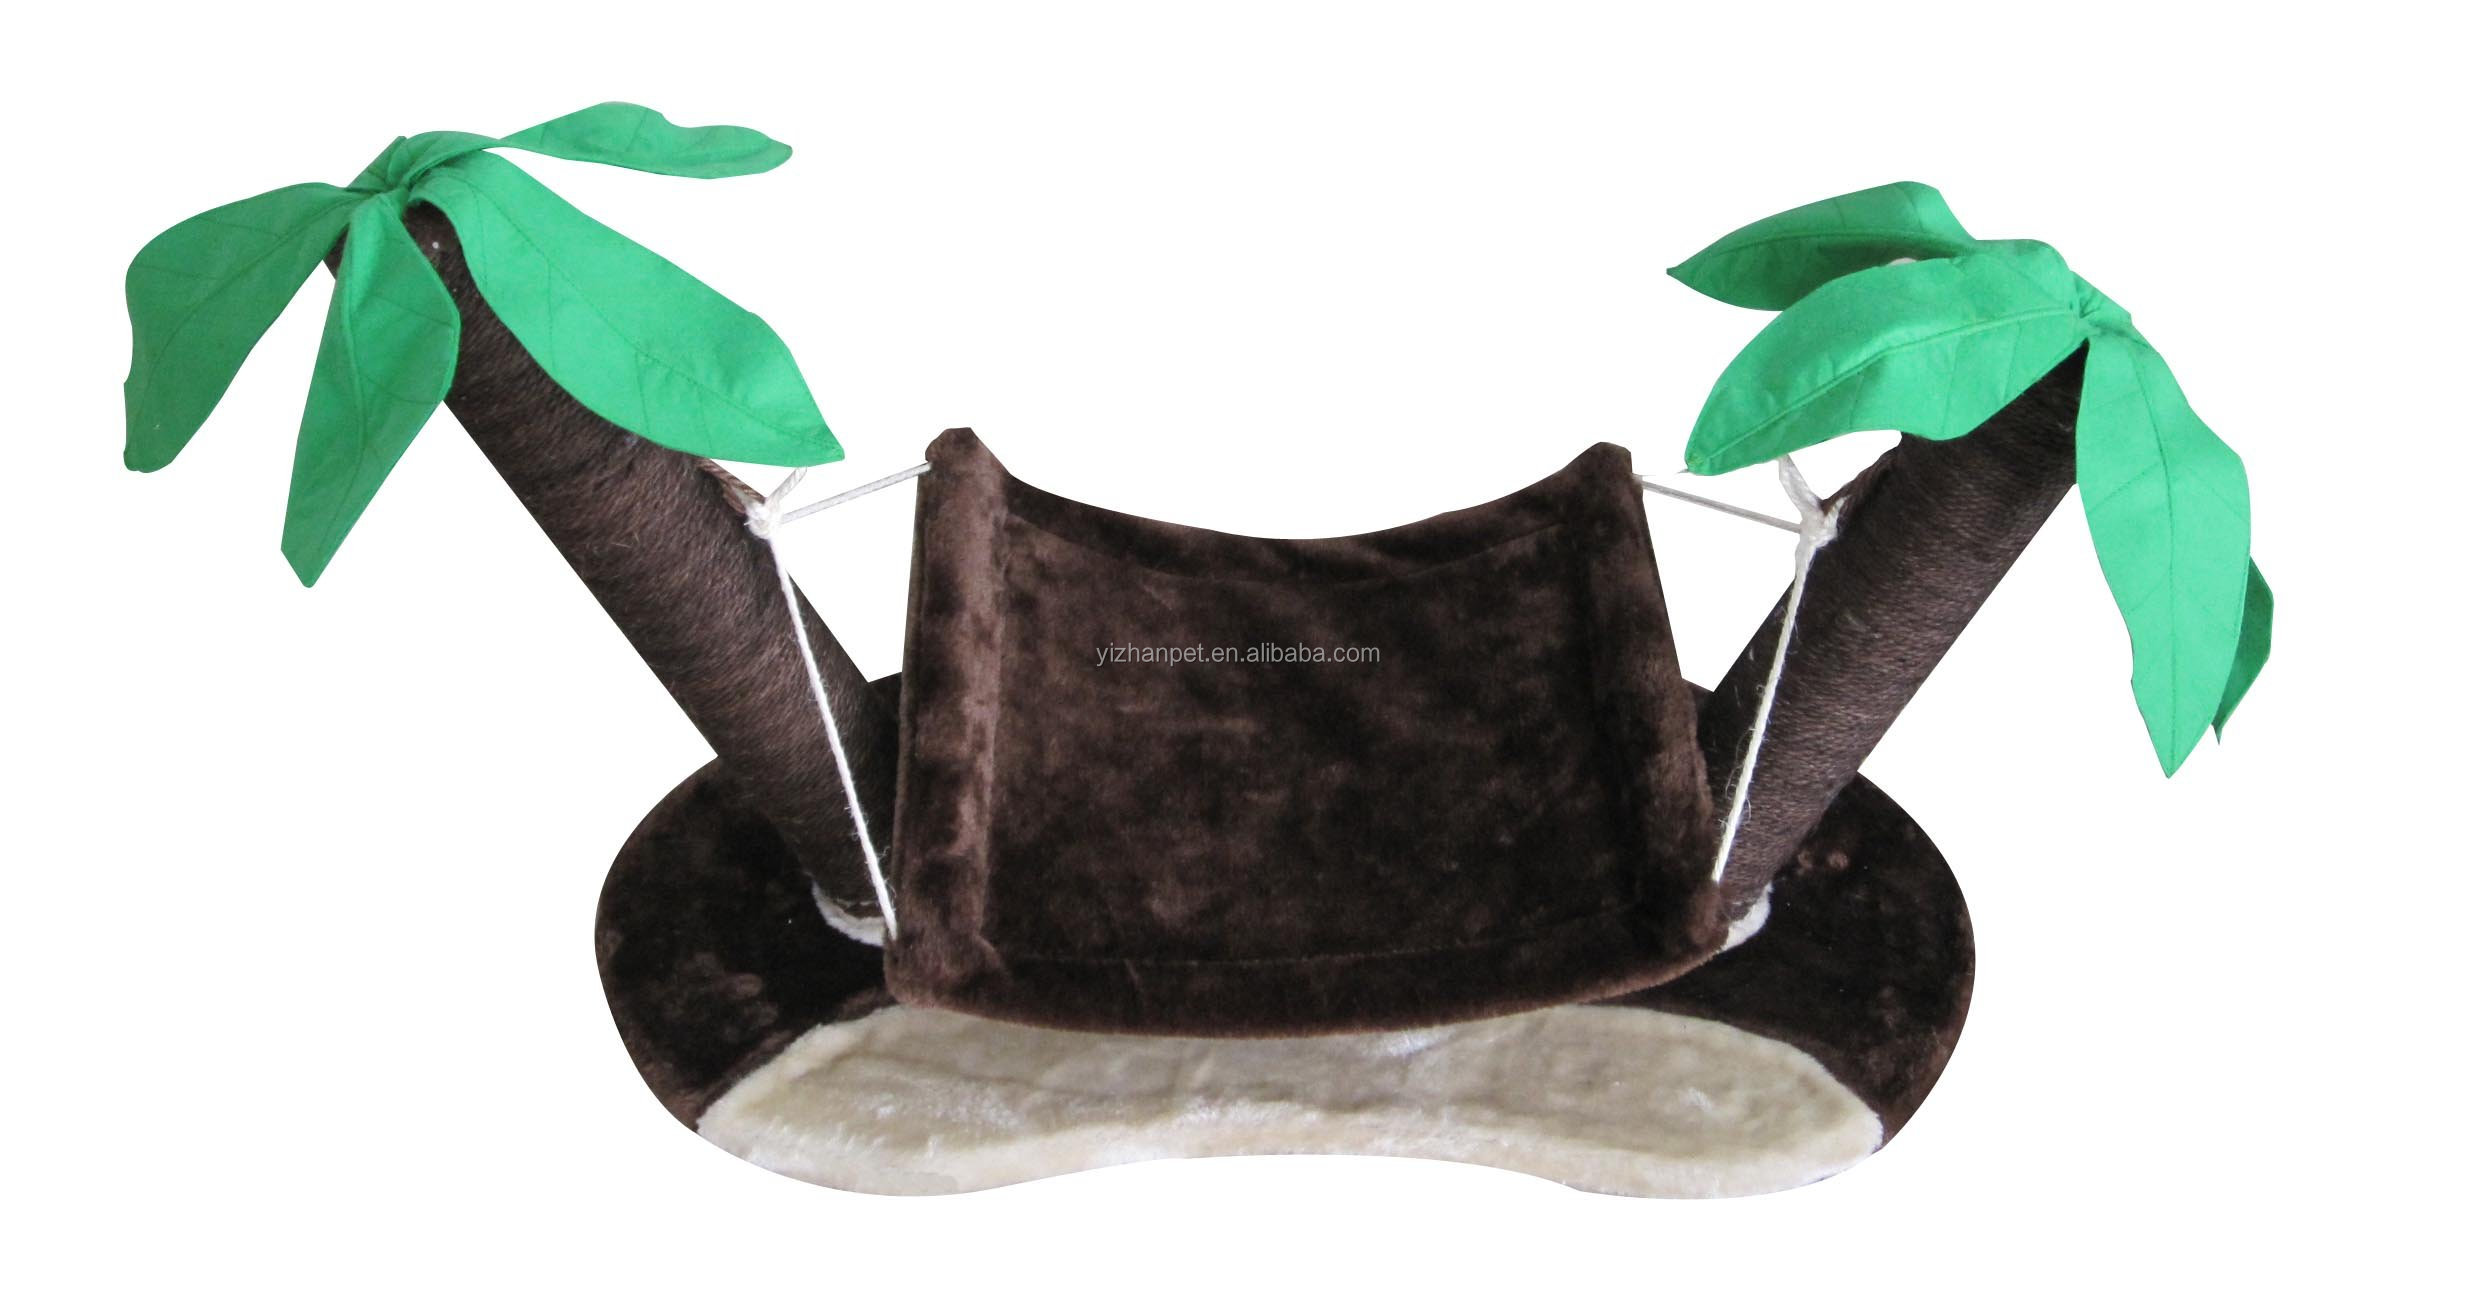 tree roots furniture,coconut tree shaped wooden cat furniture,cat manufacturer China supplier home decor pet products